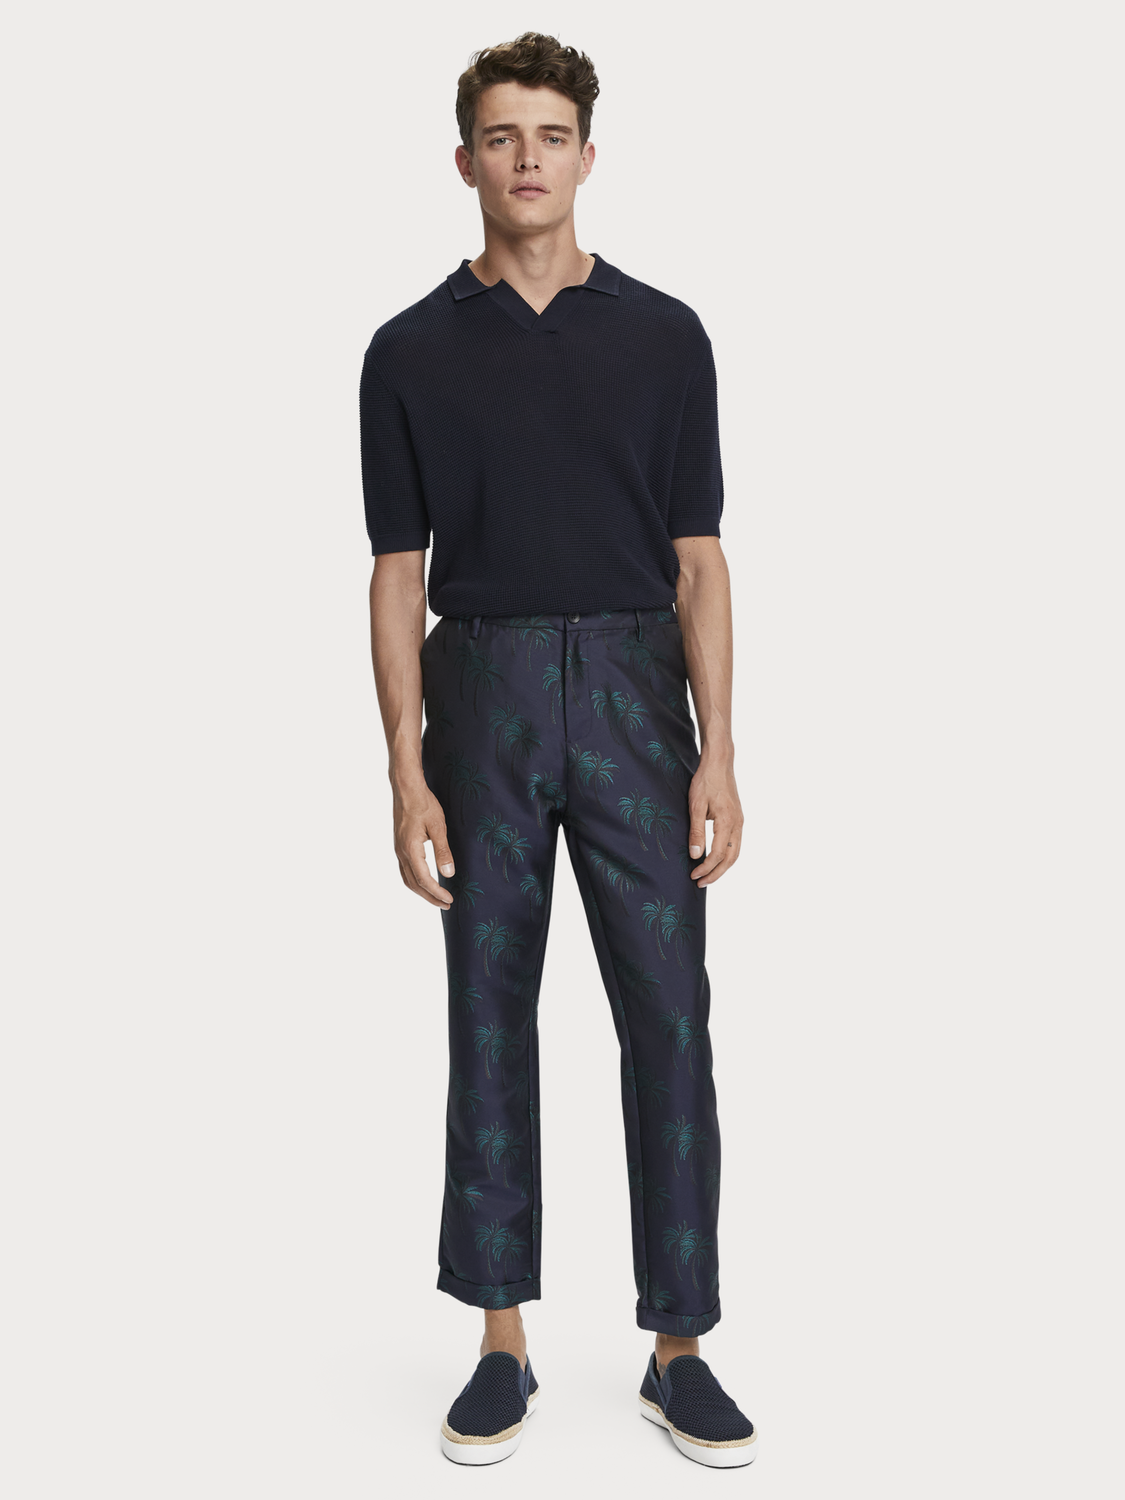 Men Fave - palm tree jacquard trousers | Regular tapered fit